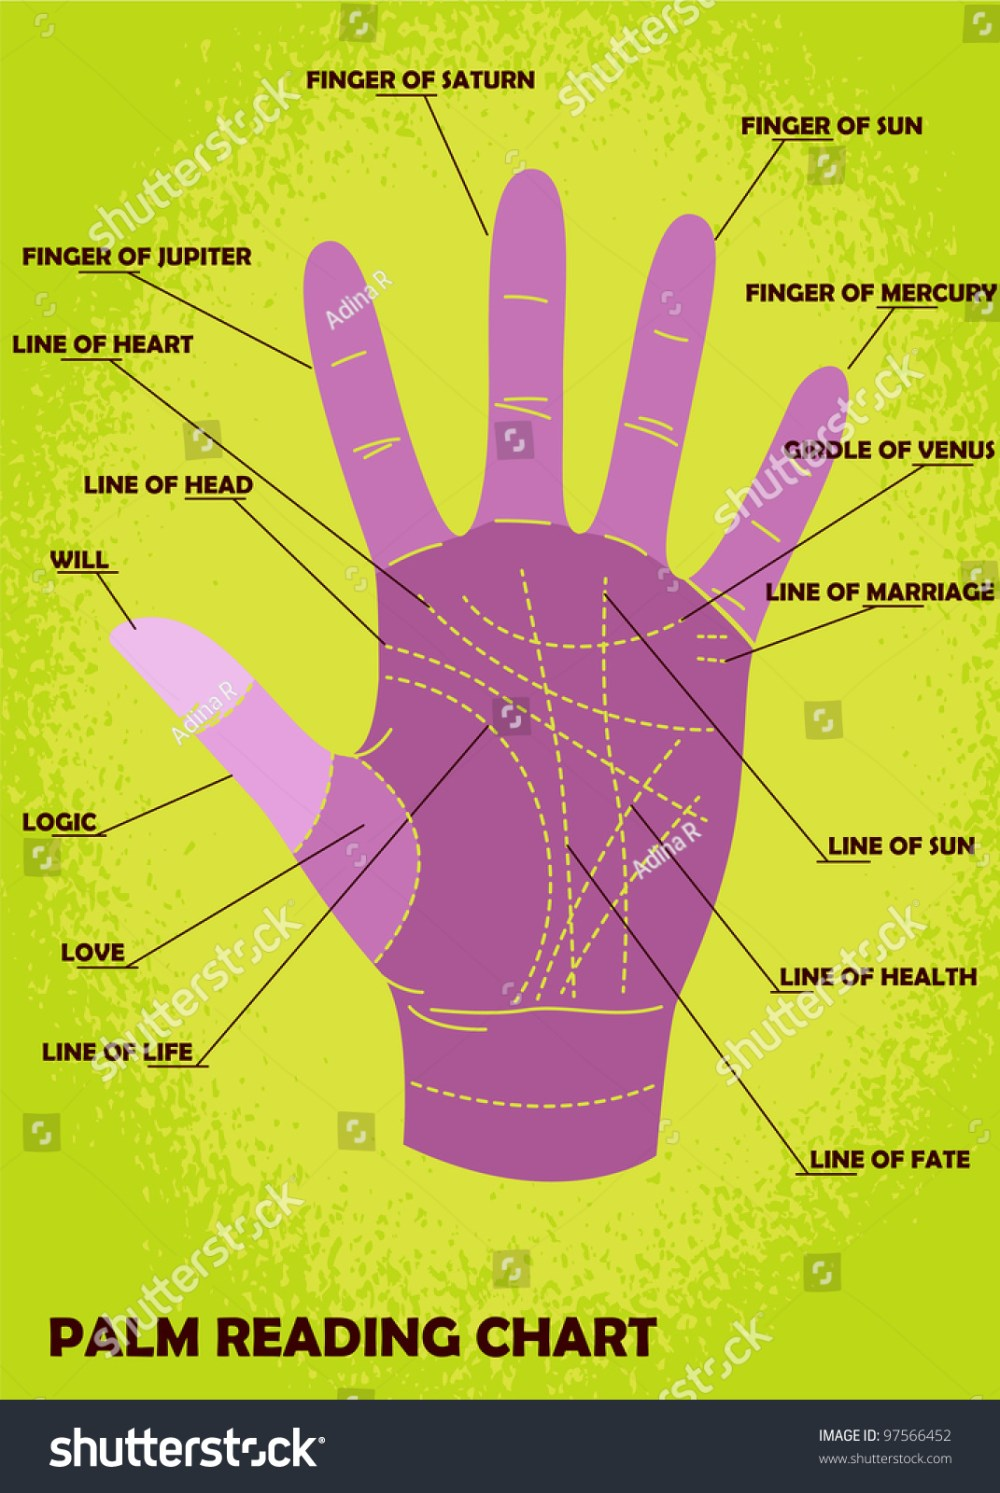 medium resolution of palm reading chart showing explanations